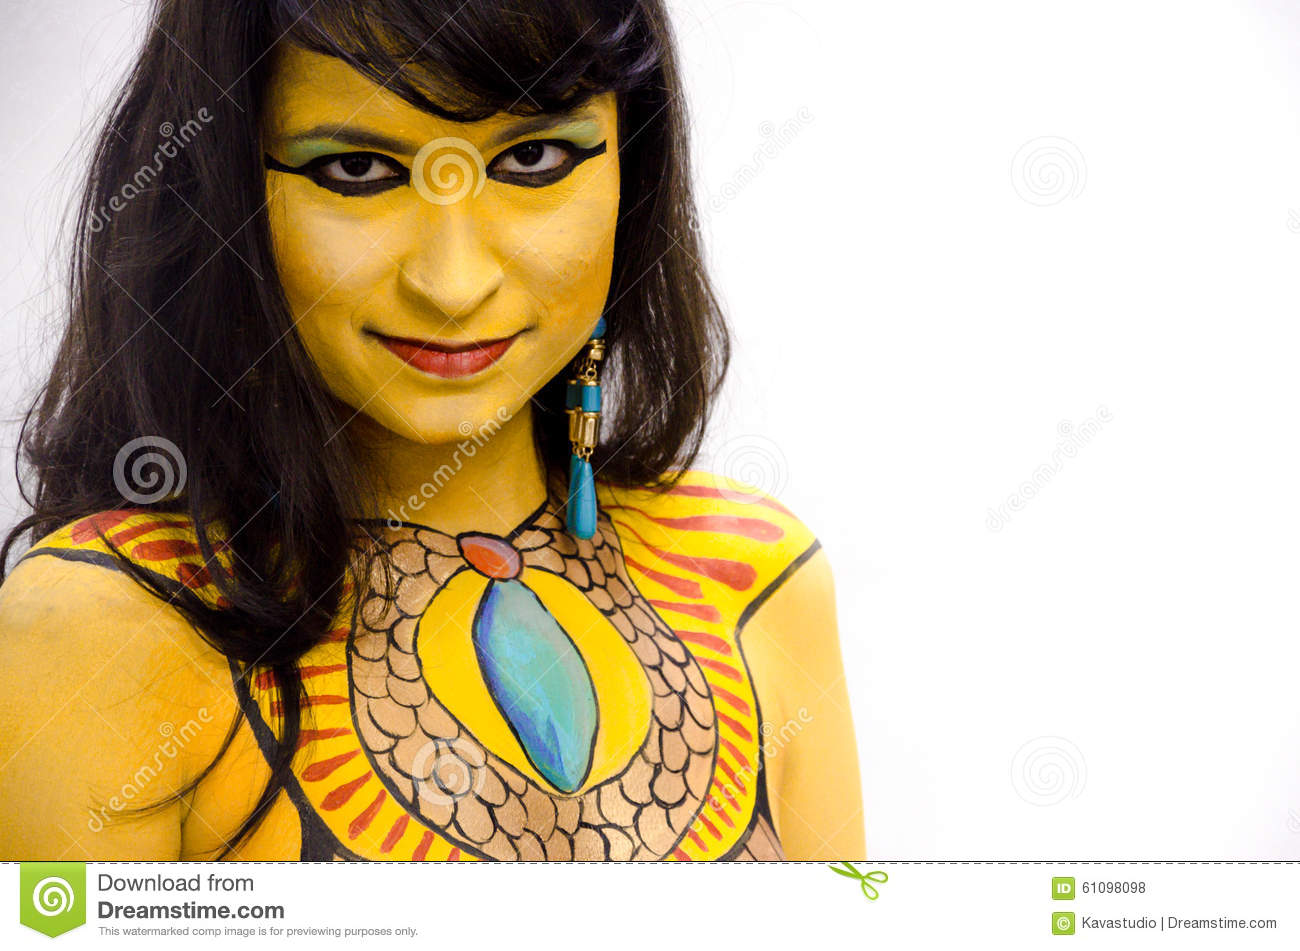 Mysterious yellow bodypainted tribal face of a girl on a white background.